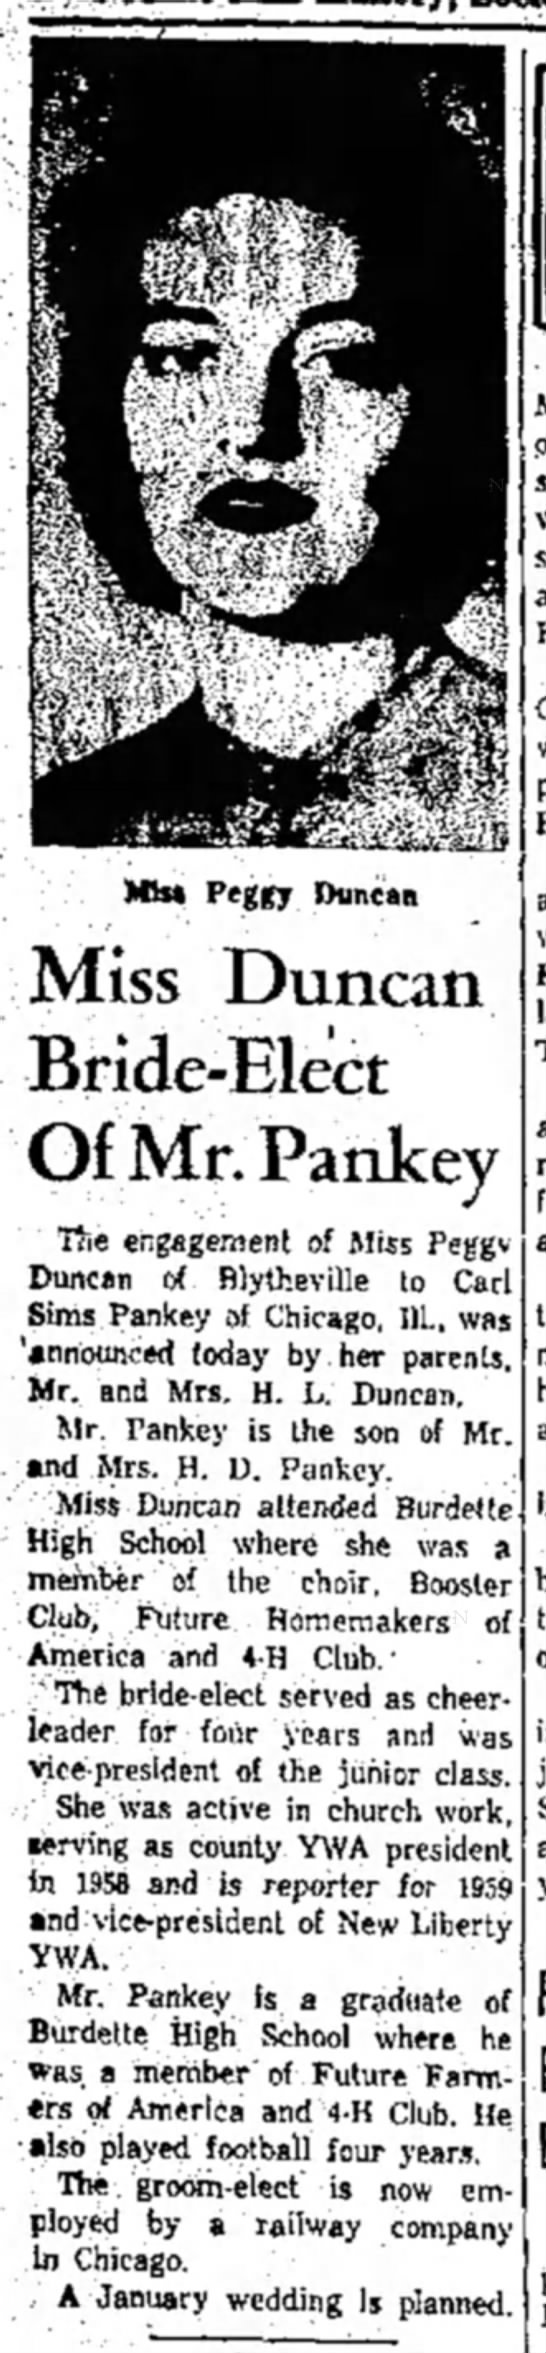 Carl Sims Pankey - Mb* Peggy Duncan Miss Duncan Bride-Elect Of Mr....